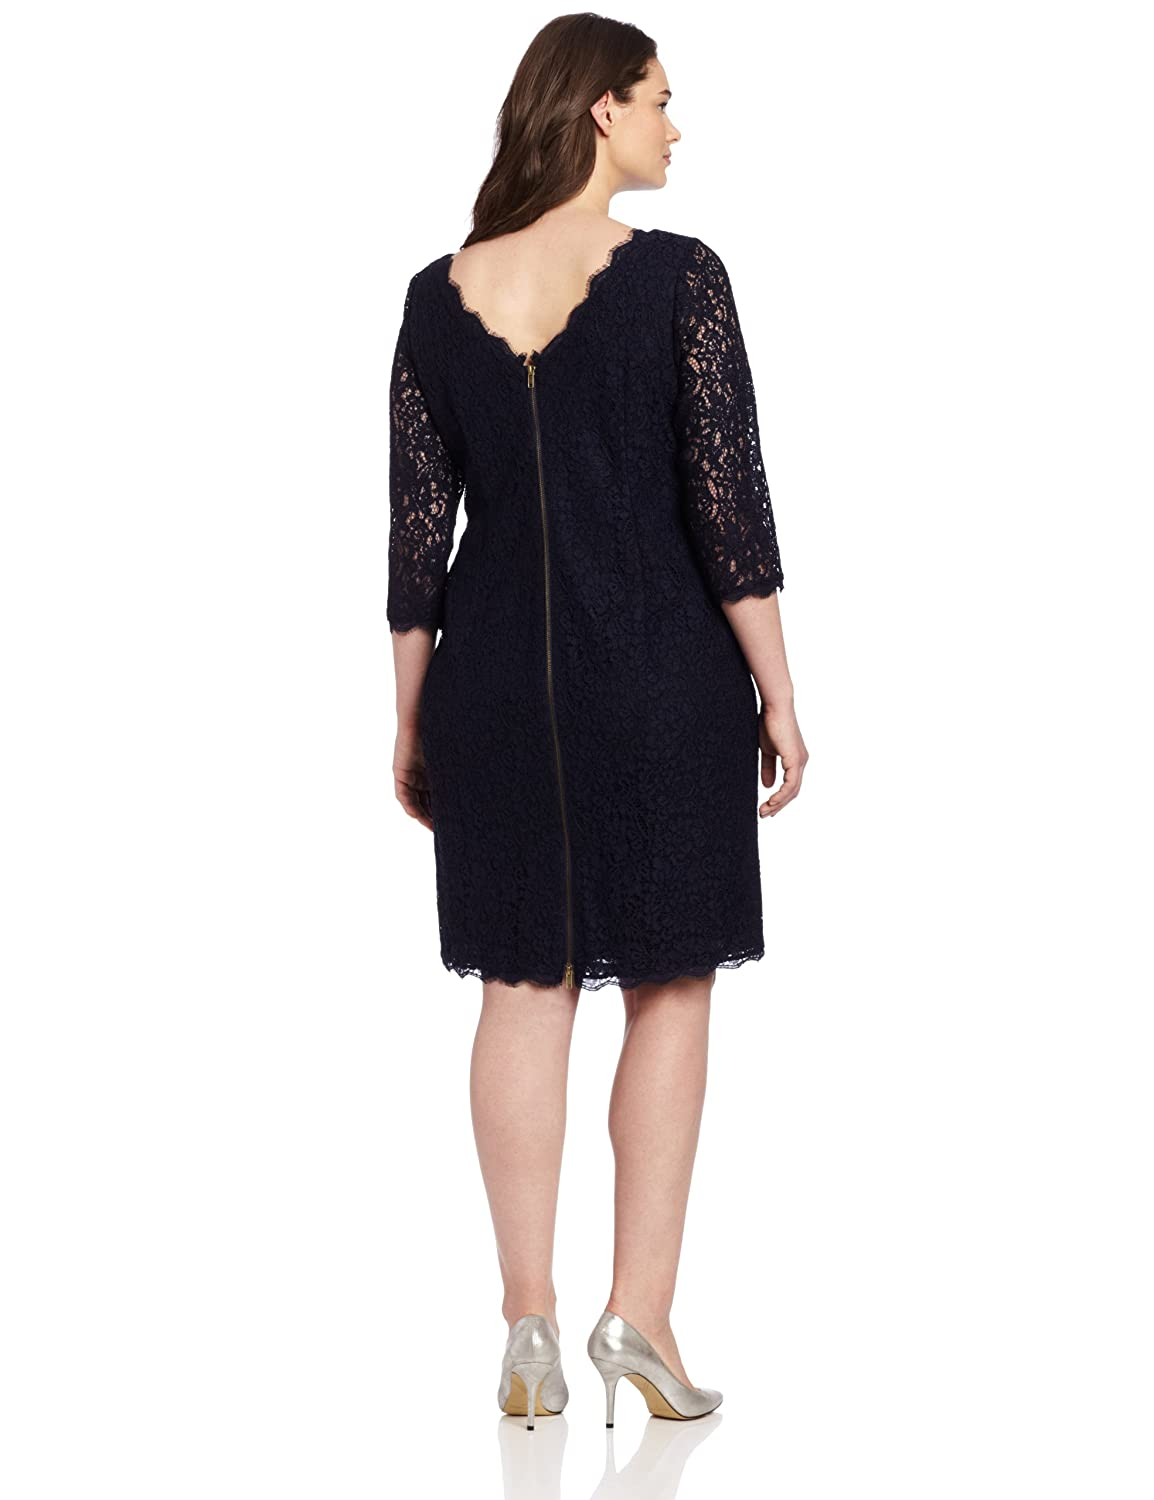 Adrianna Papell Women's Plus-Size Lace Dress